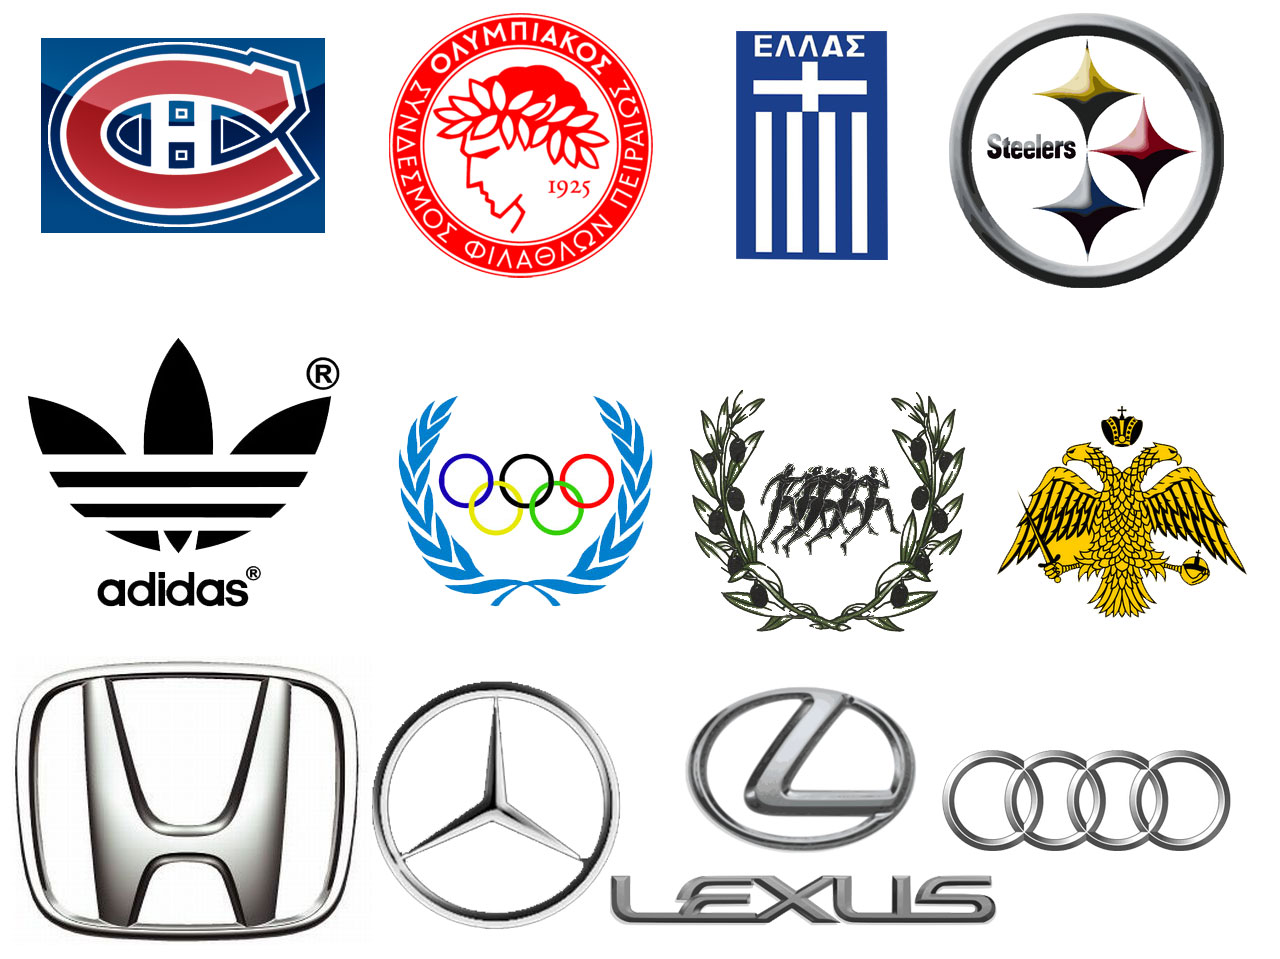 logos and what they represent